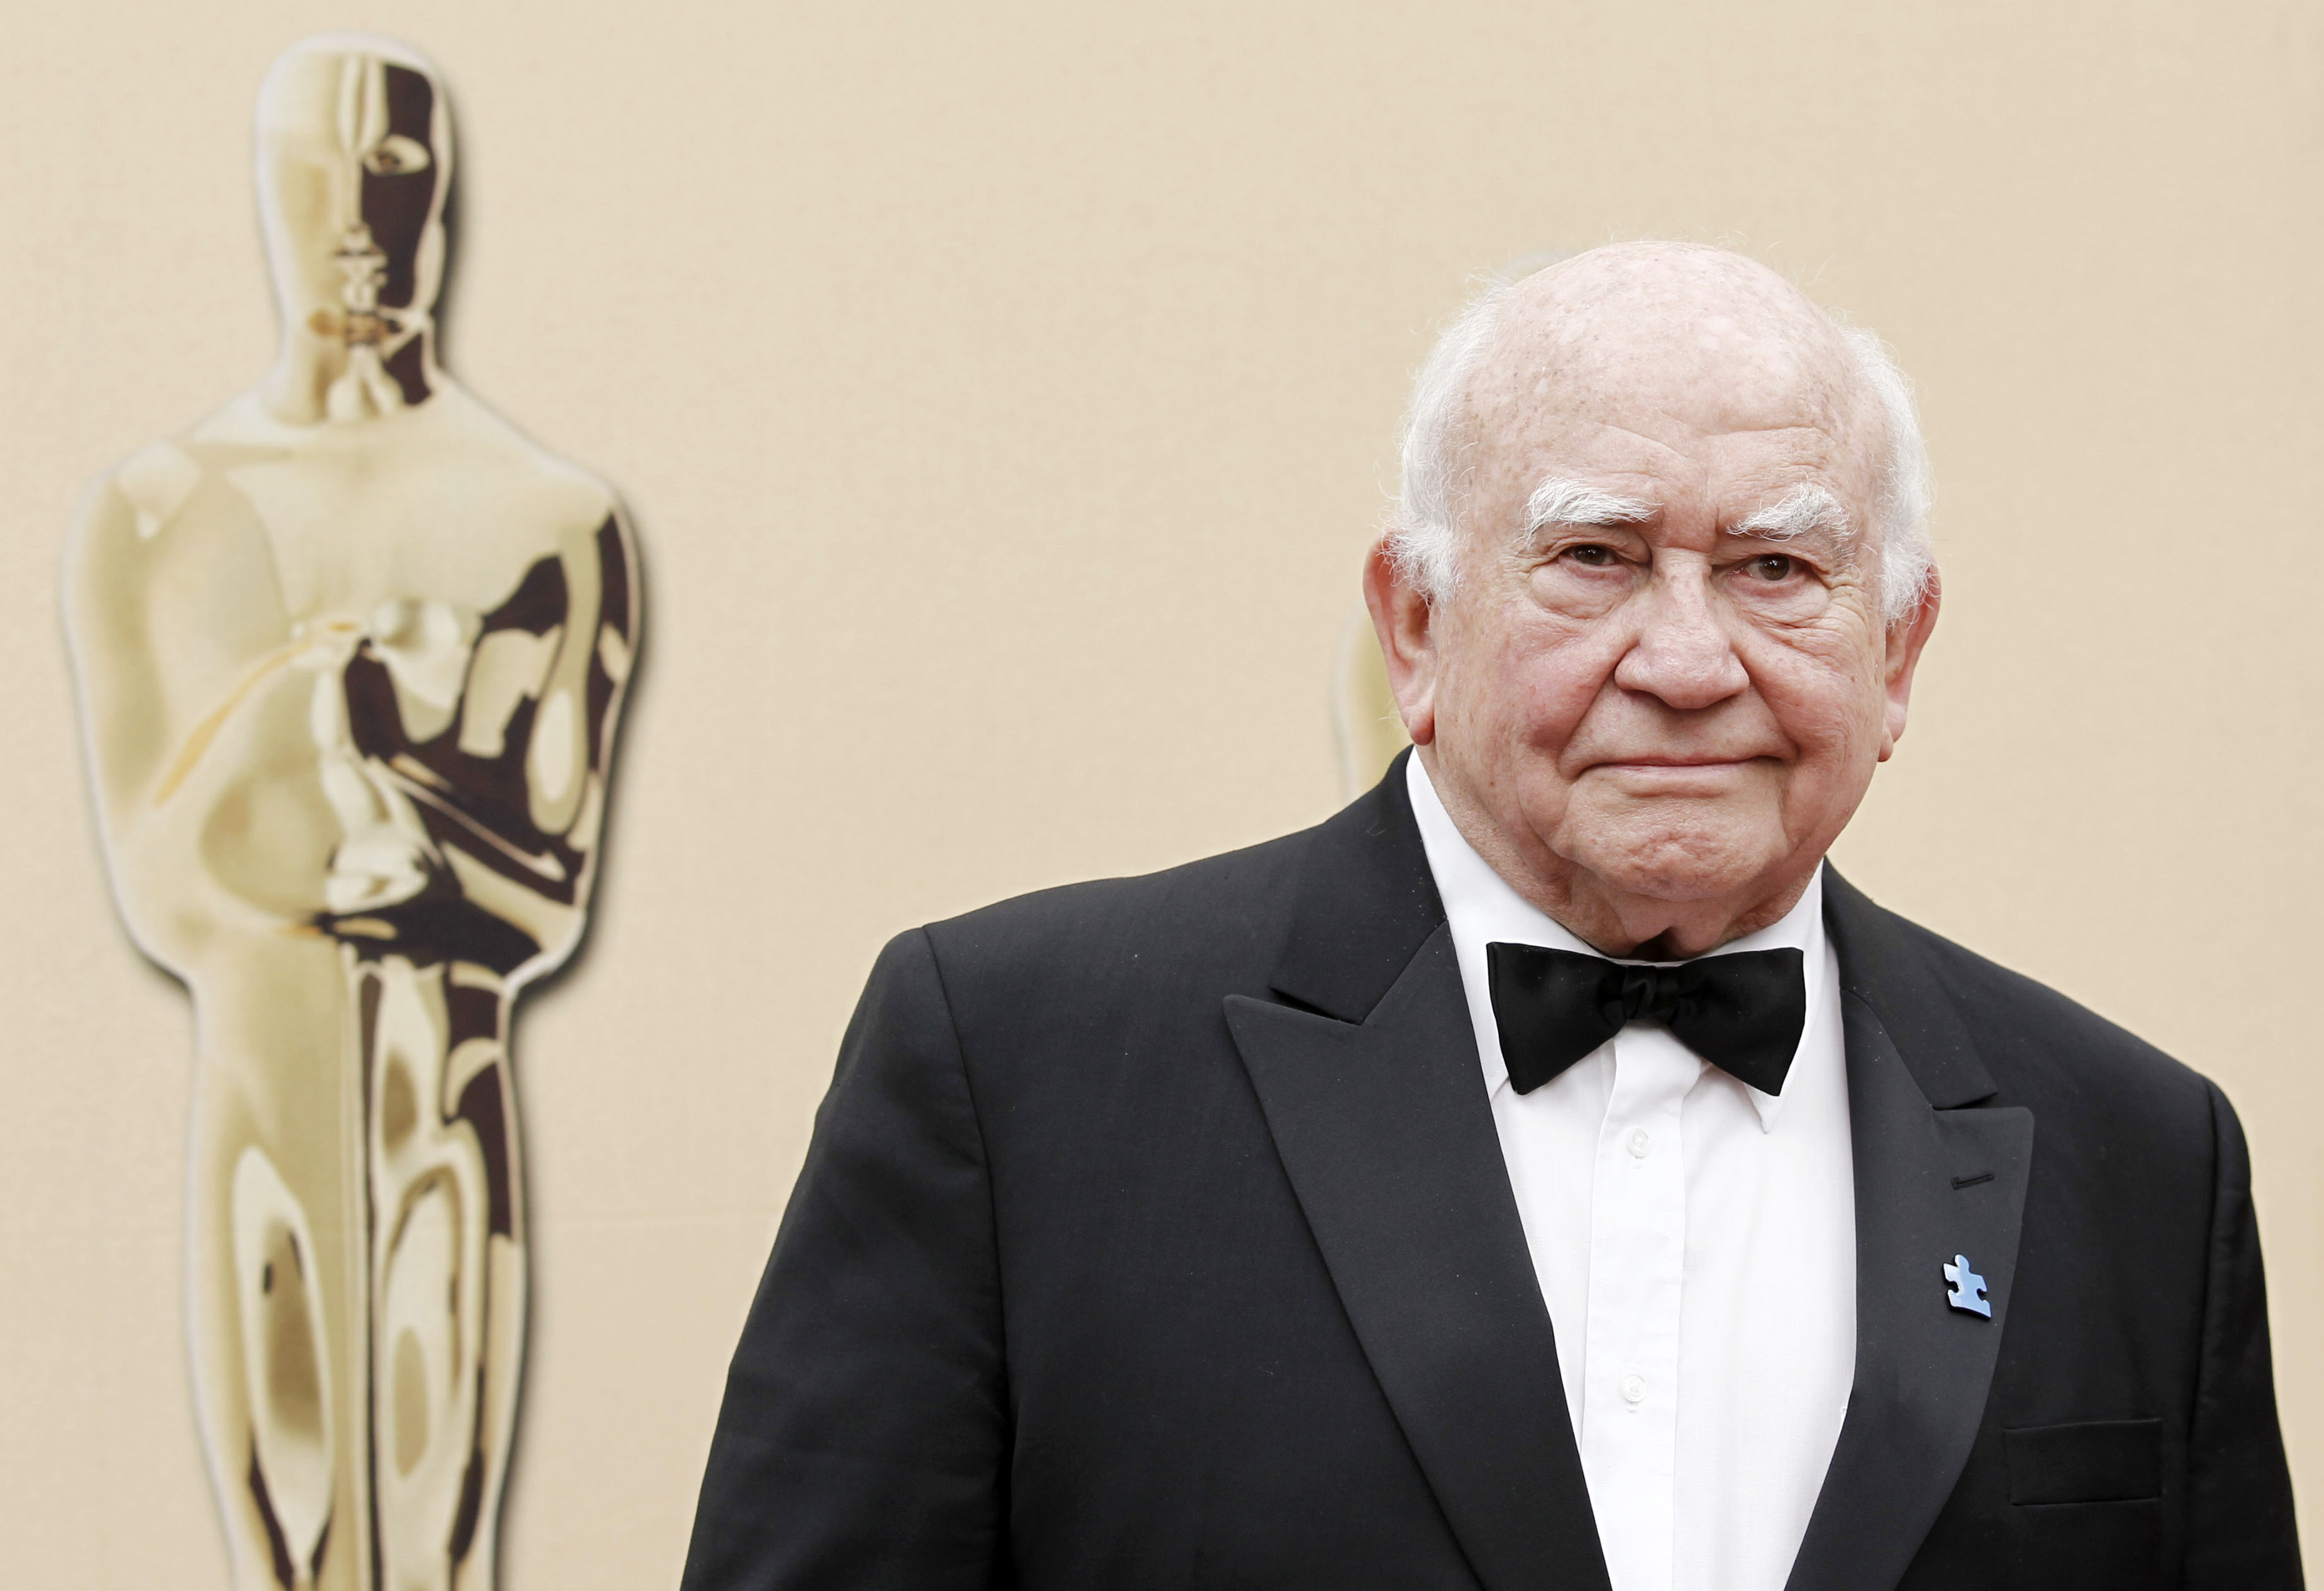 Actor Ed Asner arrives during the 82nd Academy Awards in Los Angeles.